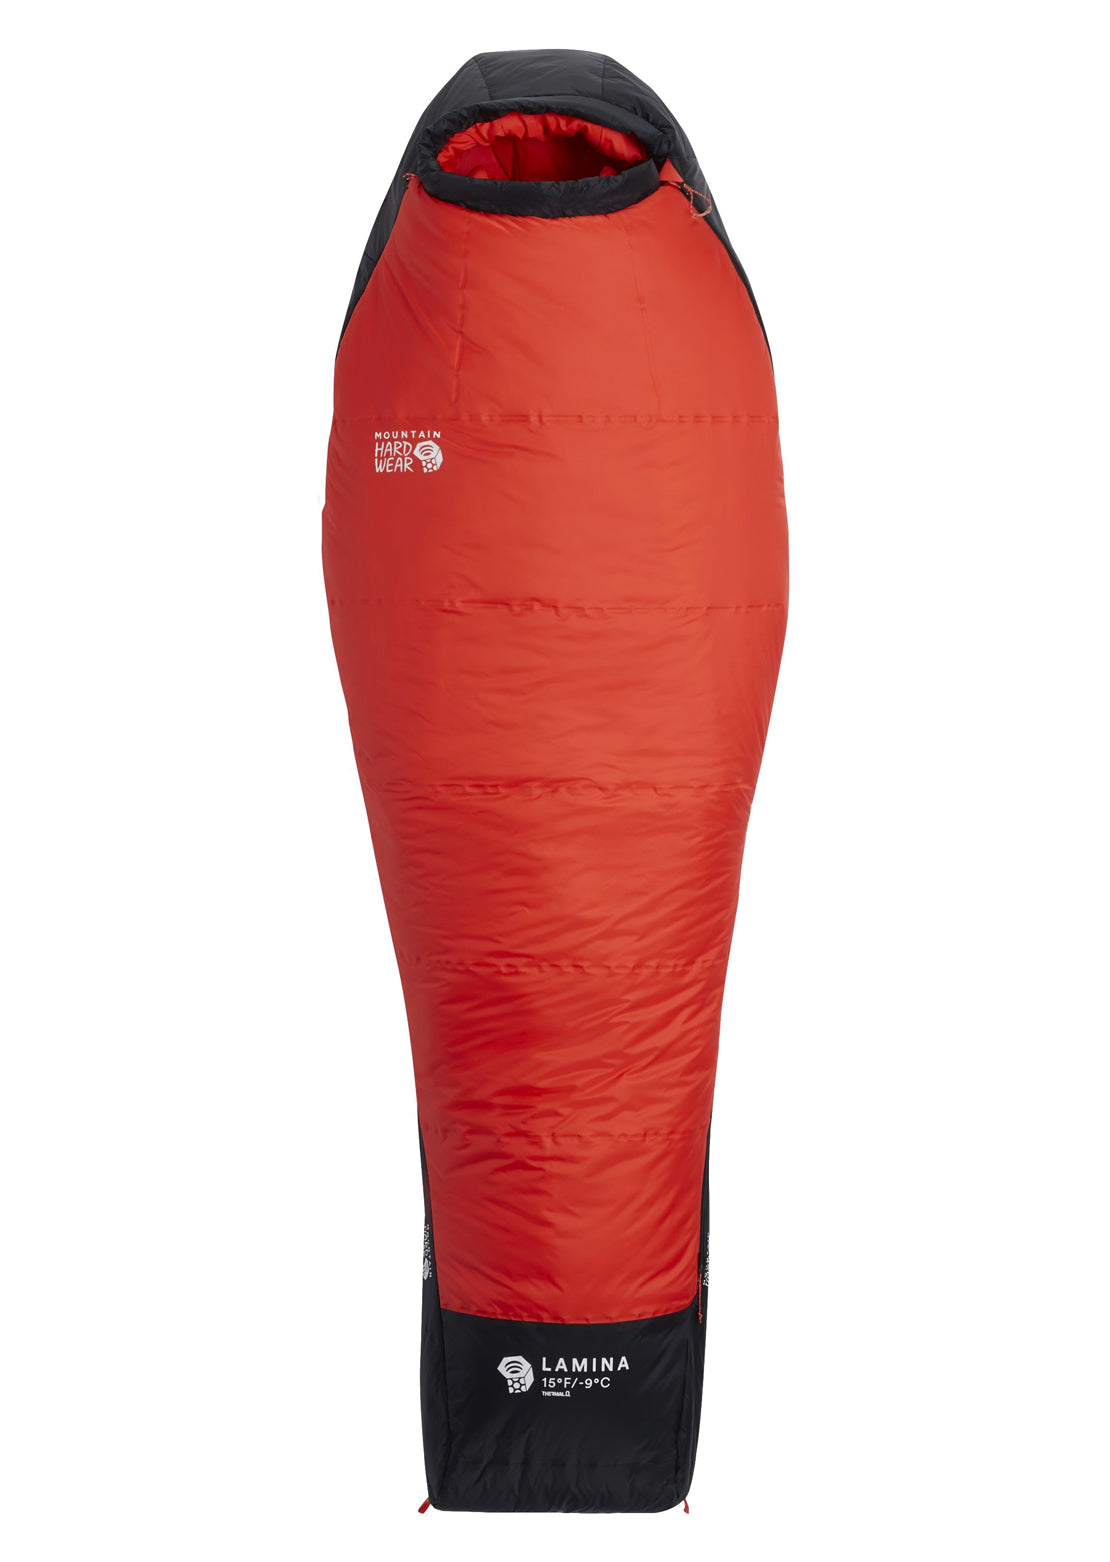 Mountain Hardwear Women's Lamina 15F/-9C Regular Sleeping Bag Poppy Red